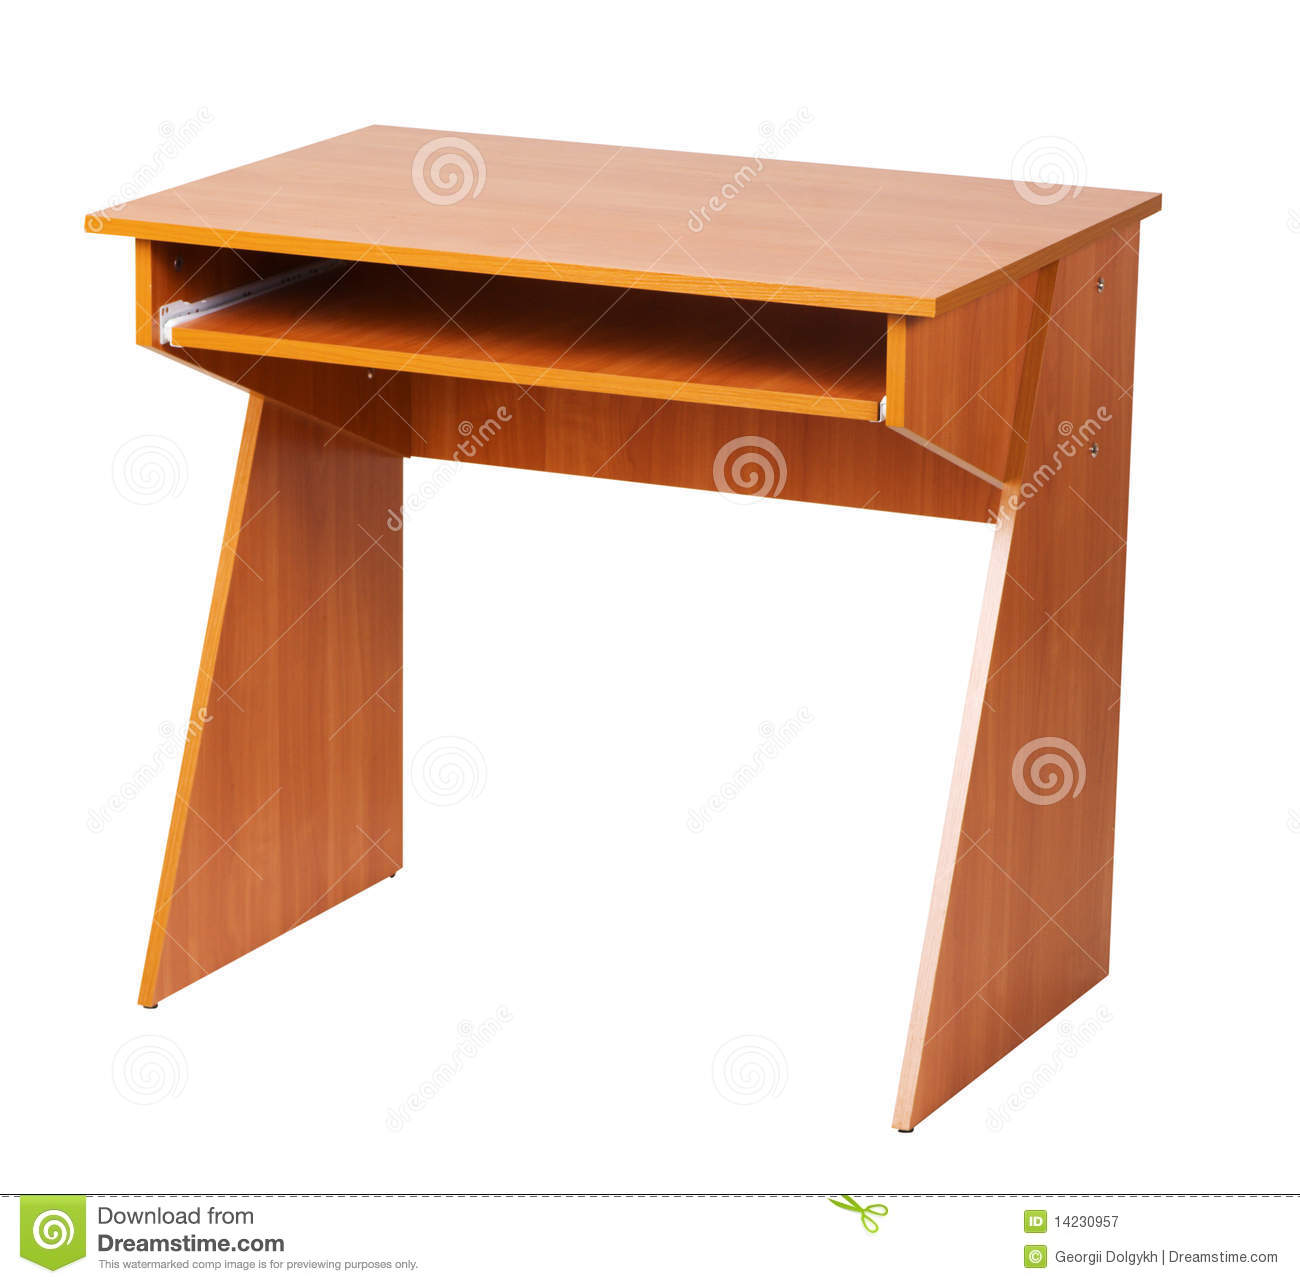 Very Impressive portraiture of Wooden Computer Table Royalty Free Stock Photography Image: 14230957 with #3A1409 color and 1300x1284 pixels